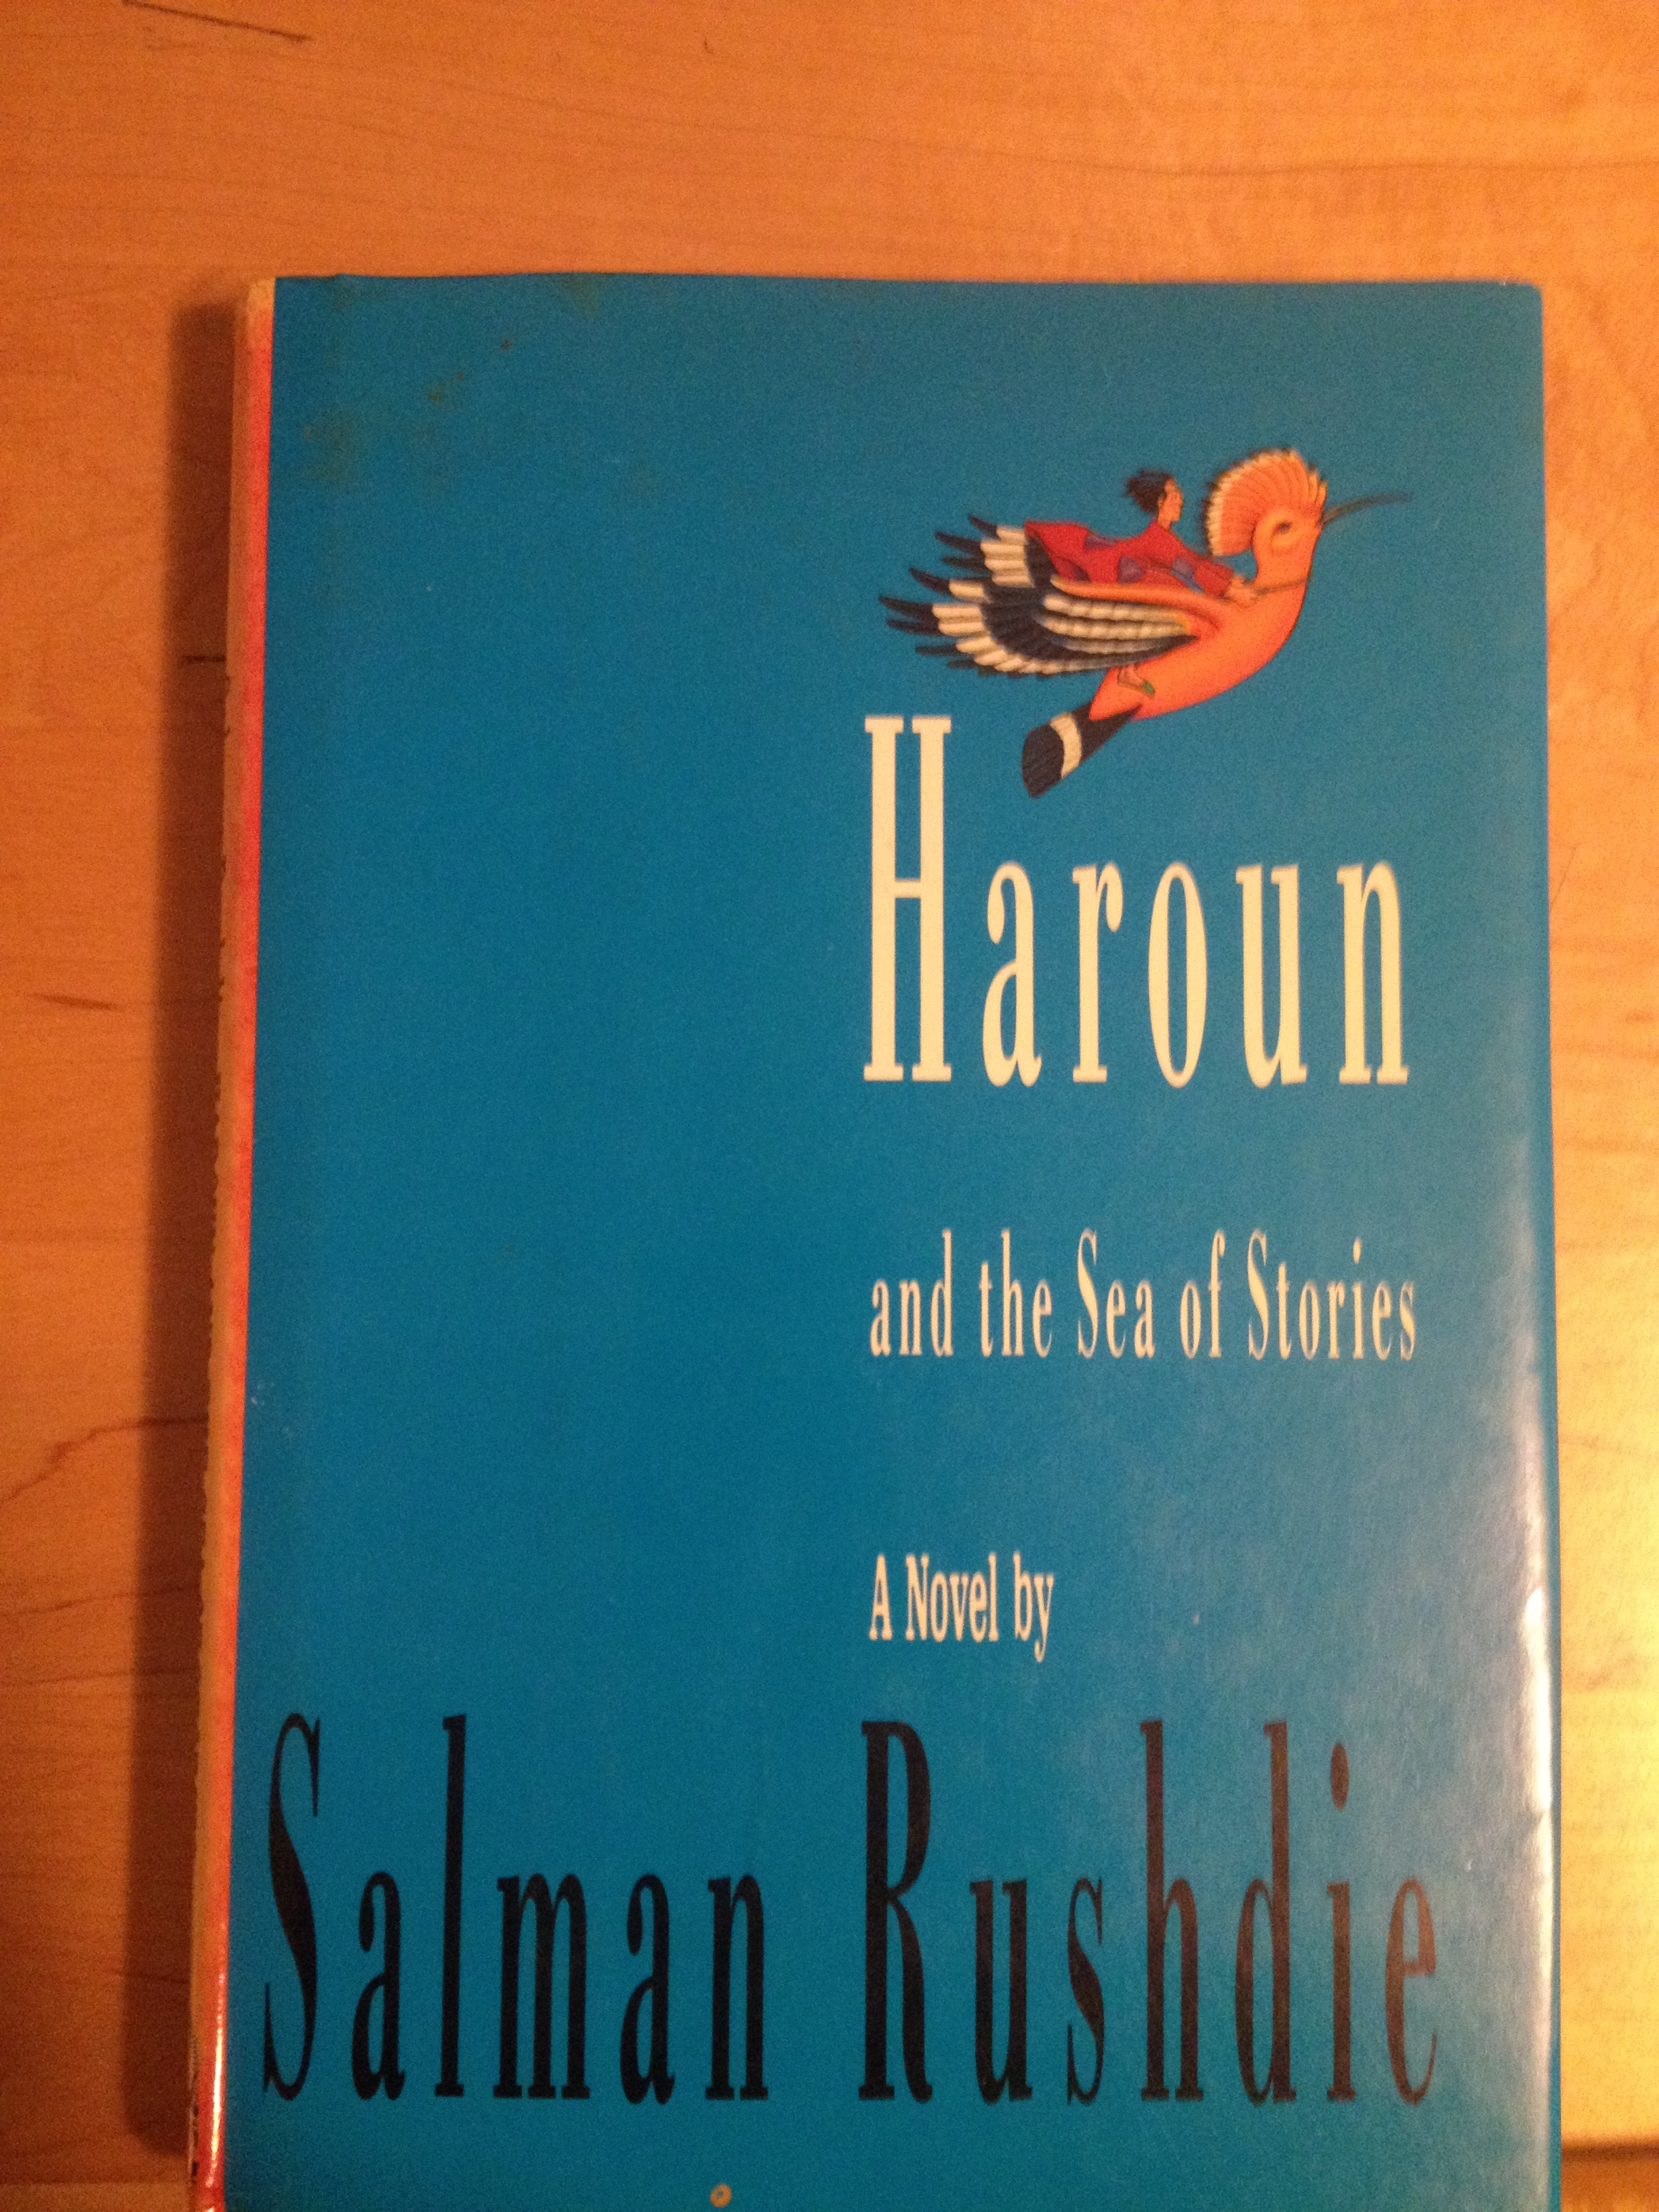 Haroun and the sea of stories essay